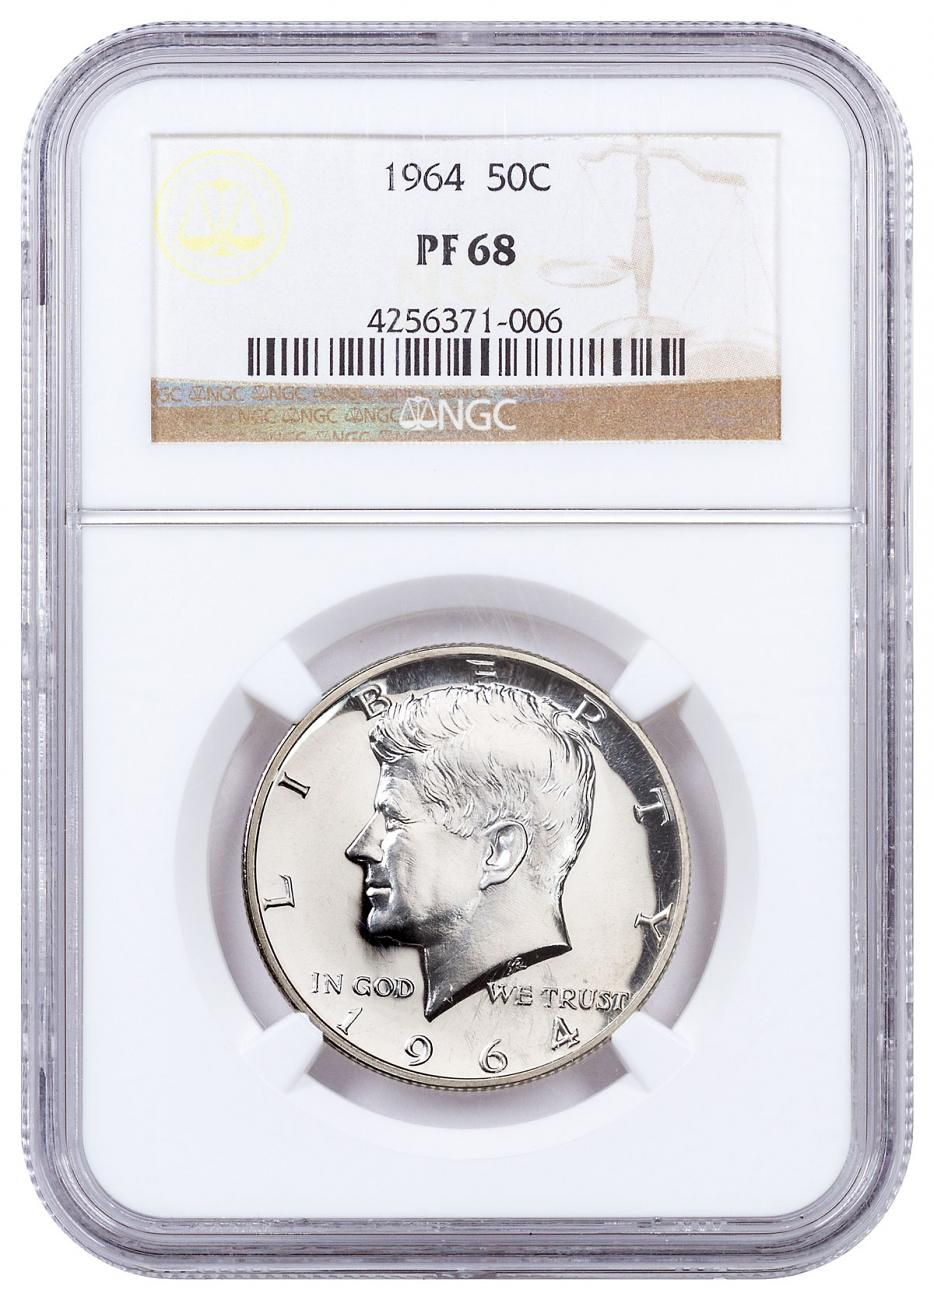 1964 Silver Kennedy Half Dollar Proof NGC PF68 Brown Label